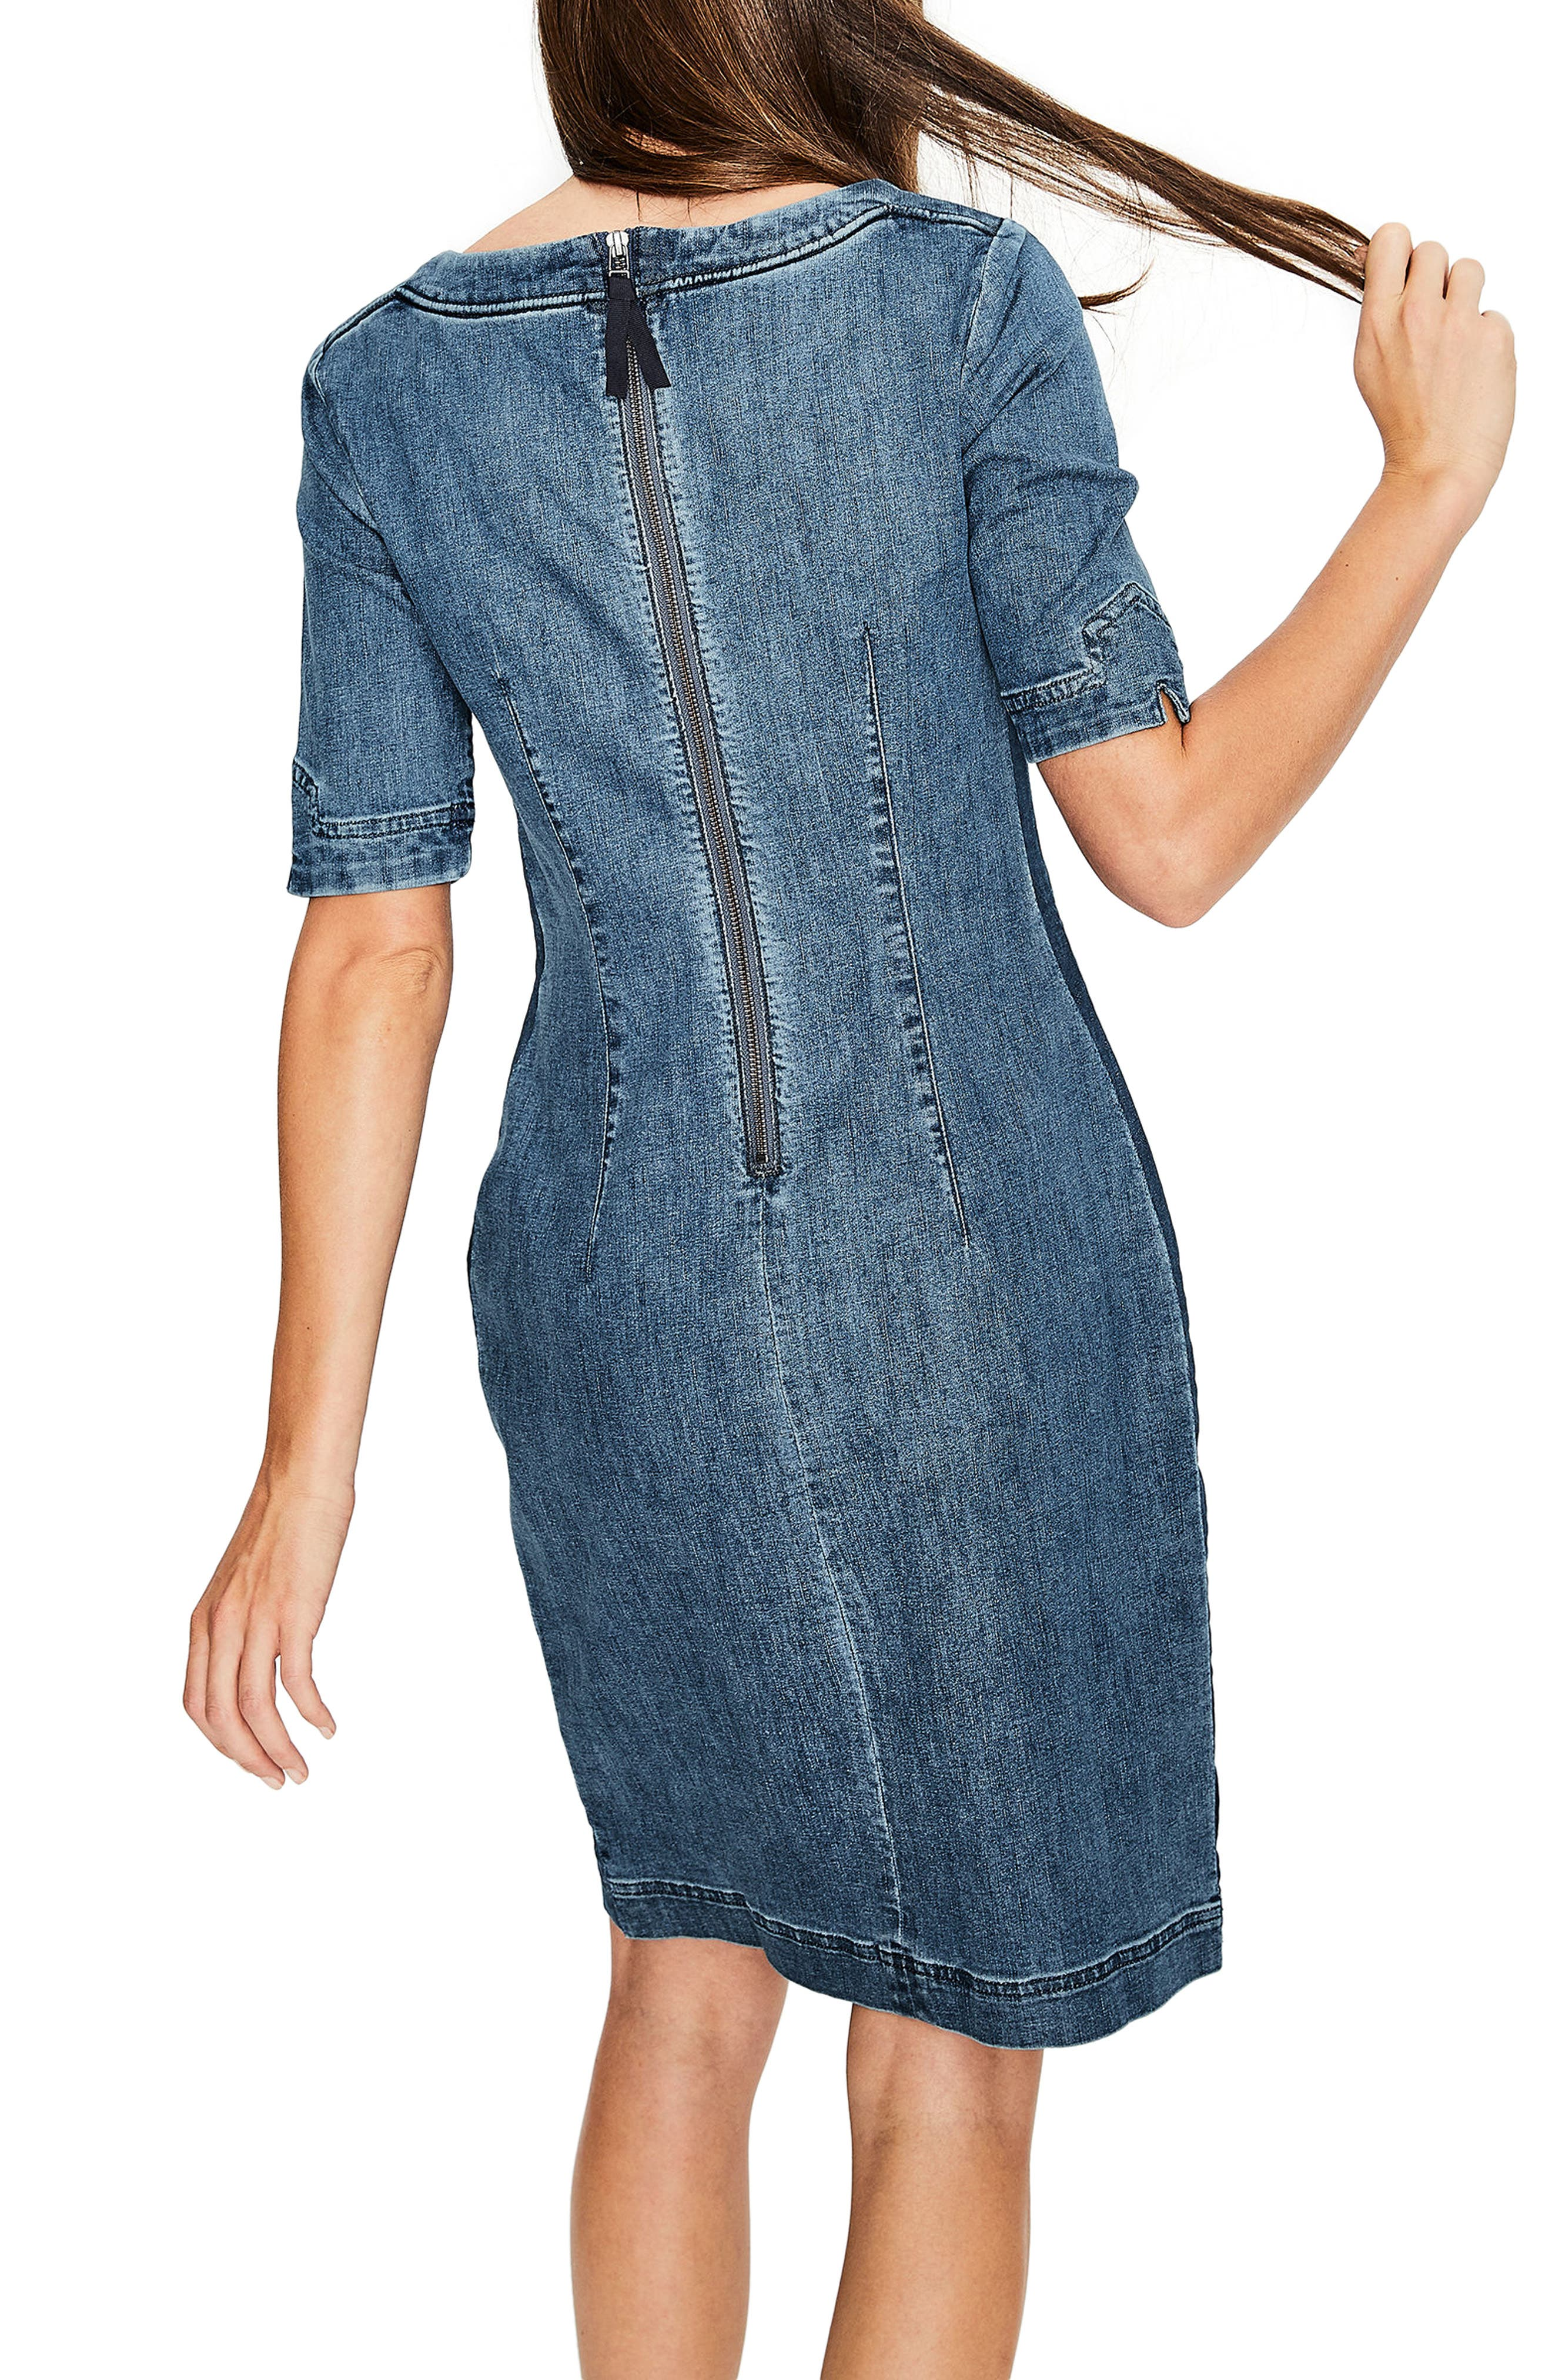 Rhea Denim Contrast Dress,                             Alternate thumbnail 2, color,                             Mid Vintage With Side Stripe